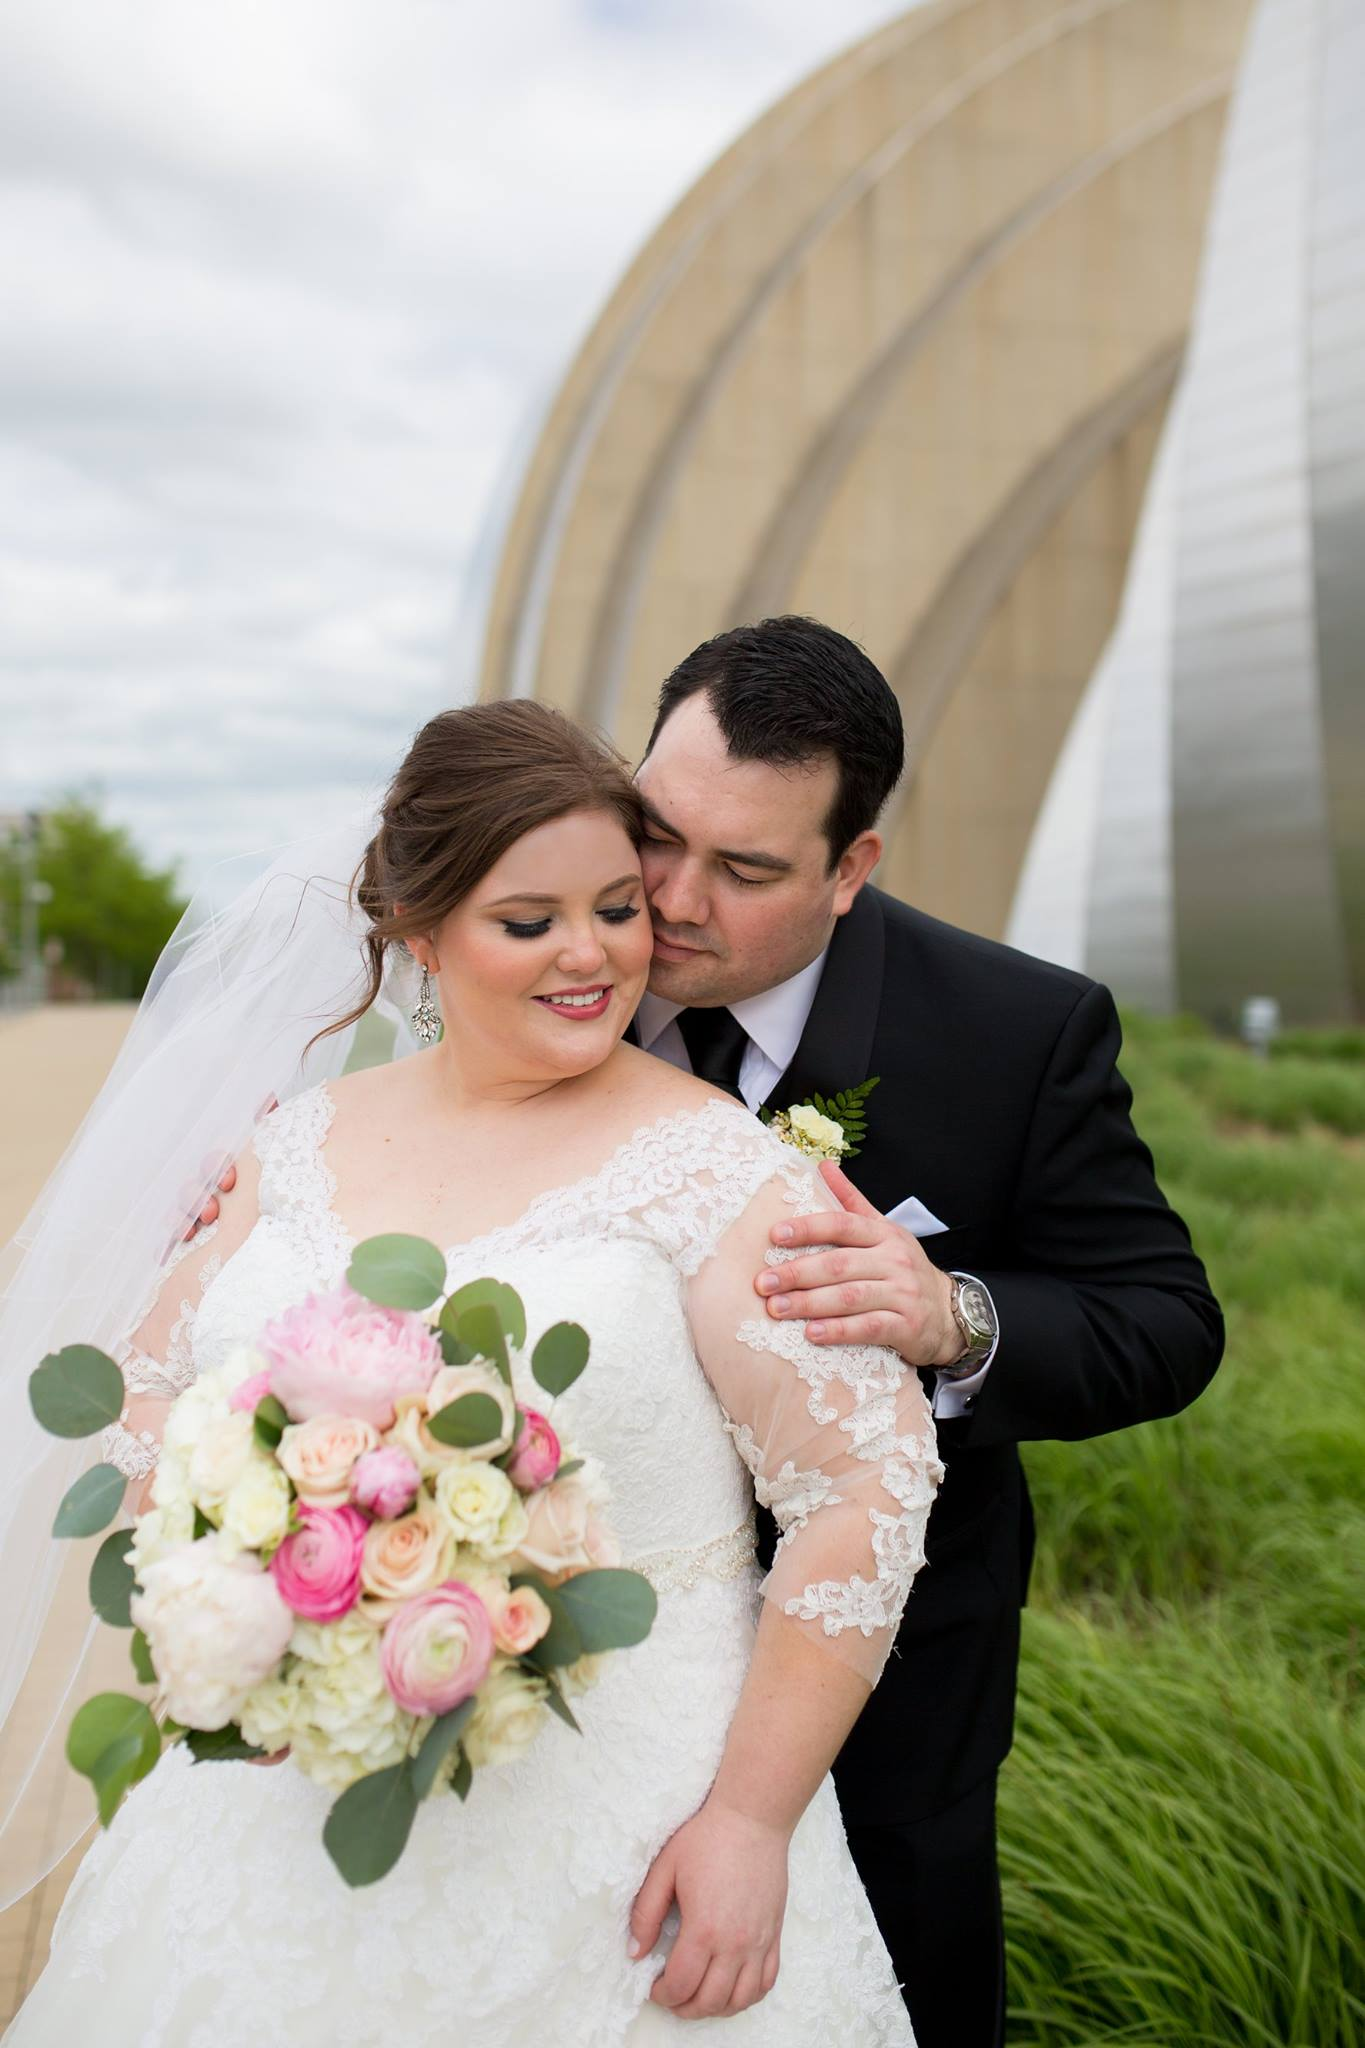 Plus Size Wedding Dress Kansas City | Plus Size Bridal Salon Kansas City | All My Heart Bridal